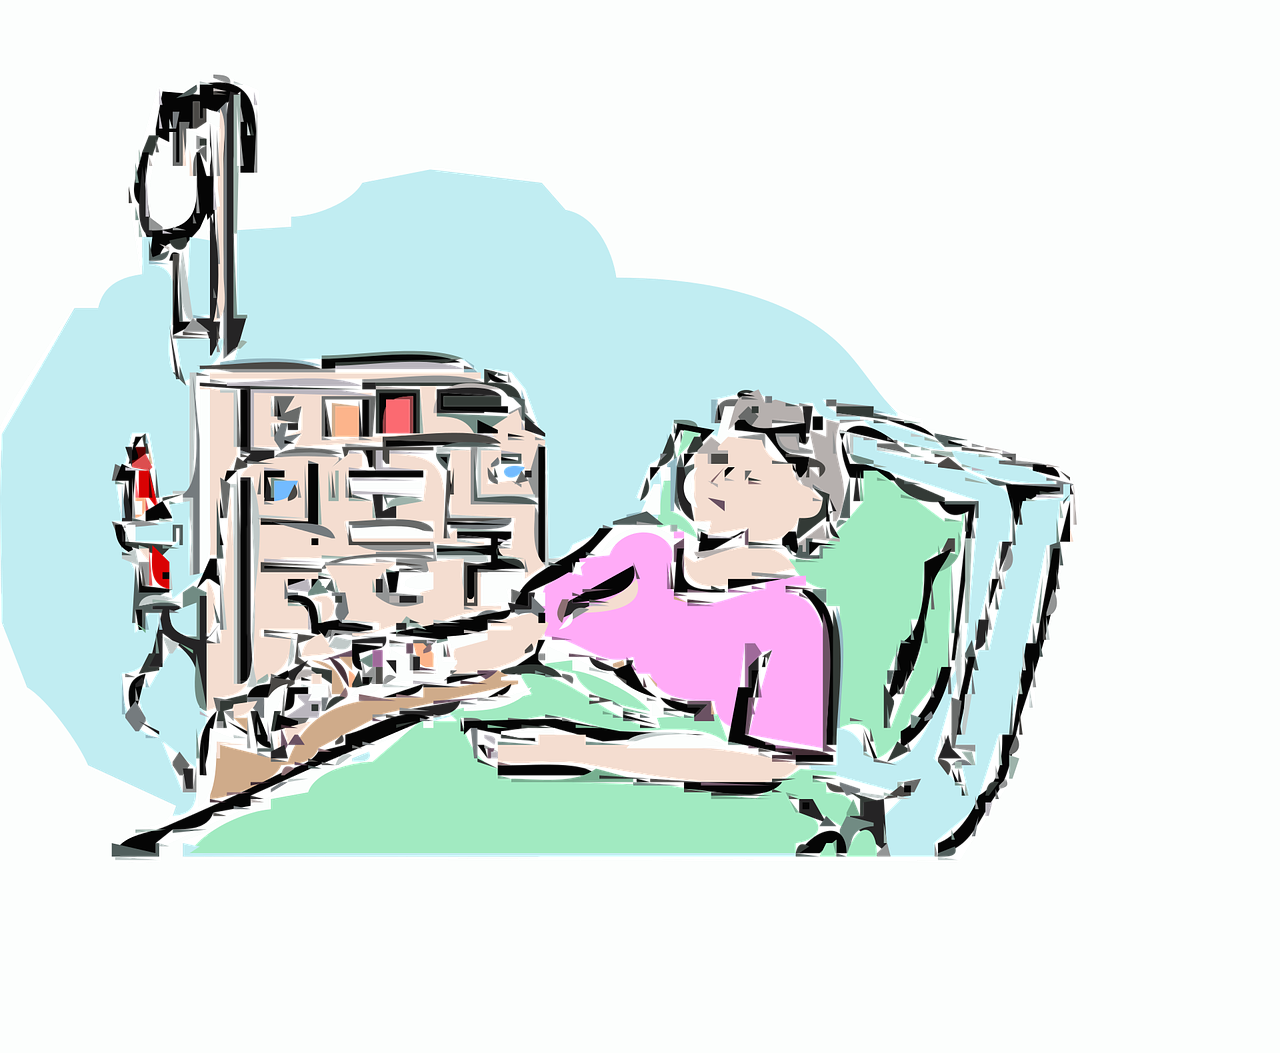 Fever clipart pneumonia patient. Intriguing medical cases